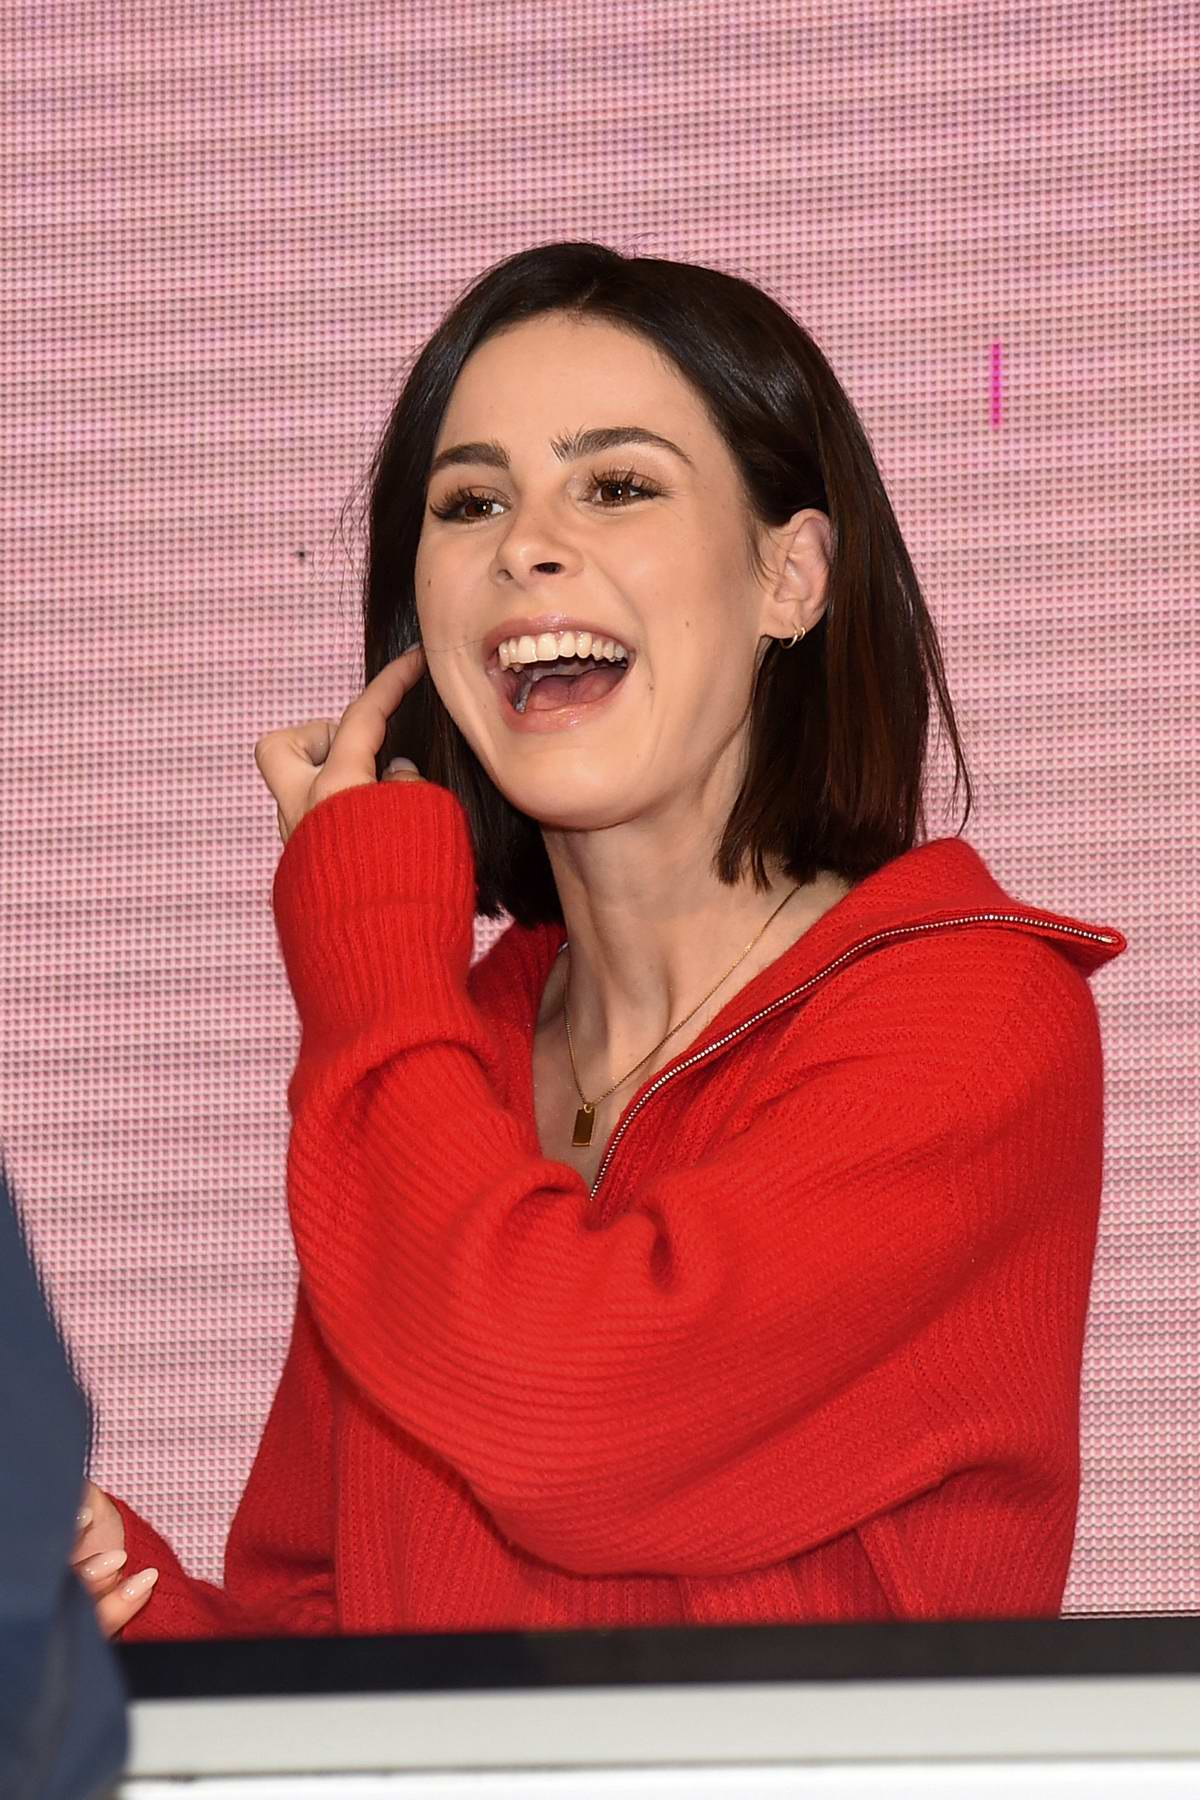 Lena Meyer Landrut Signs Autographs During The Promotion Of Her New Album Only Love L In Berlin Germany 090419 7